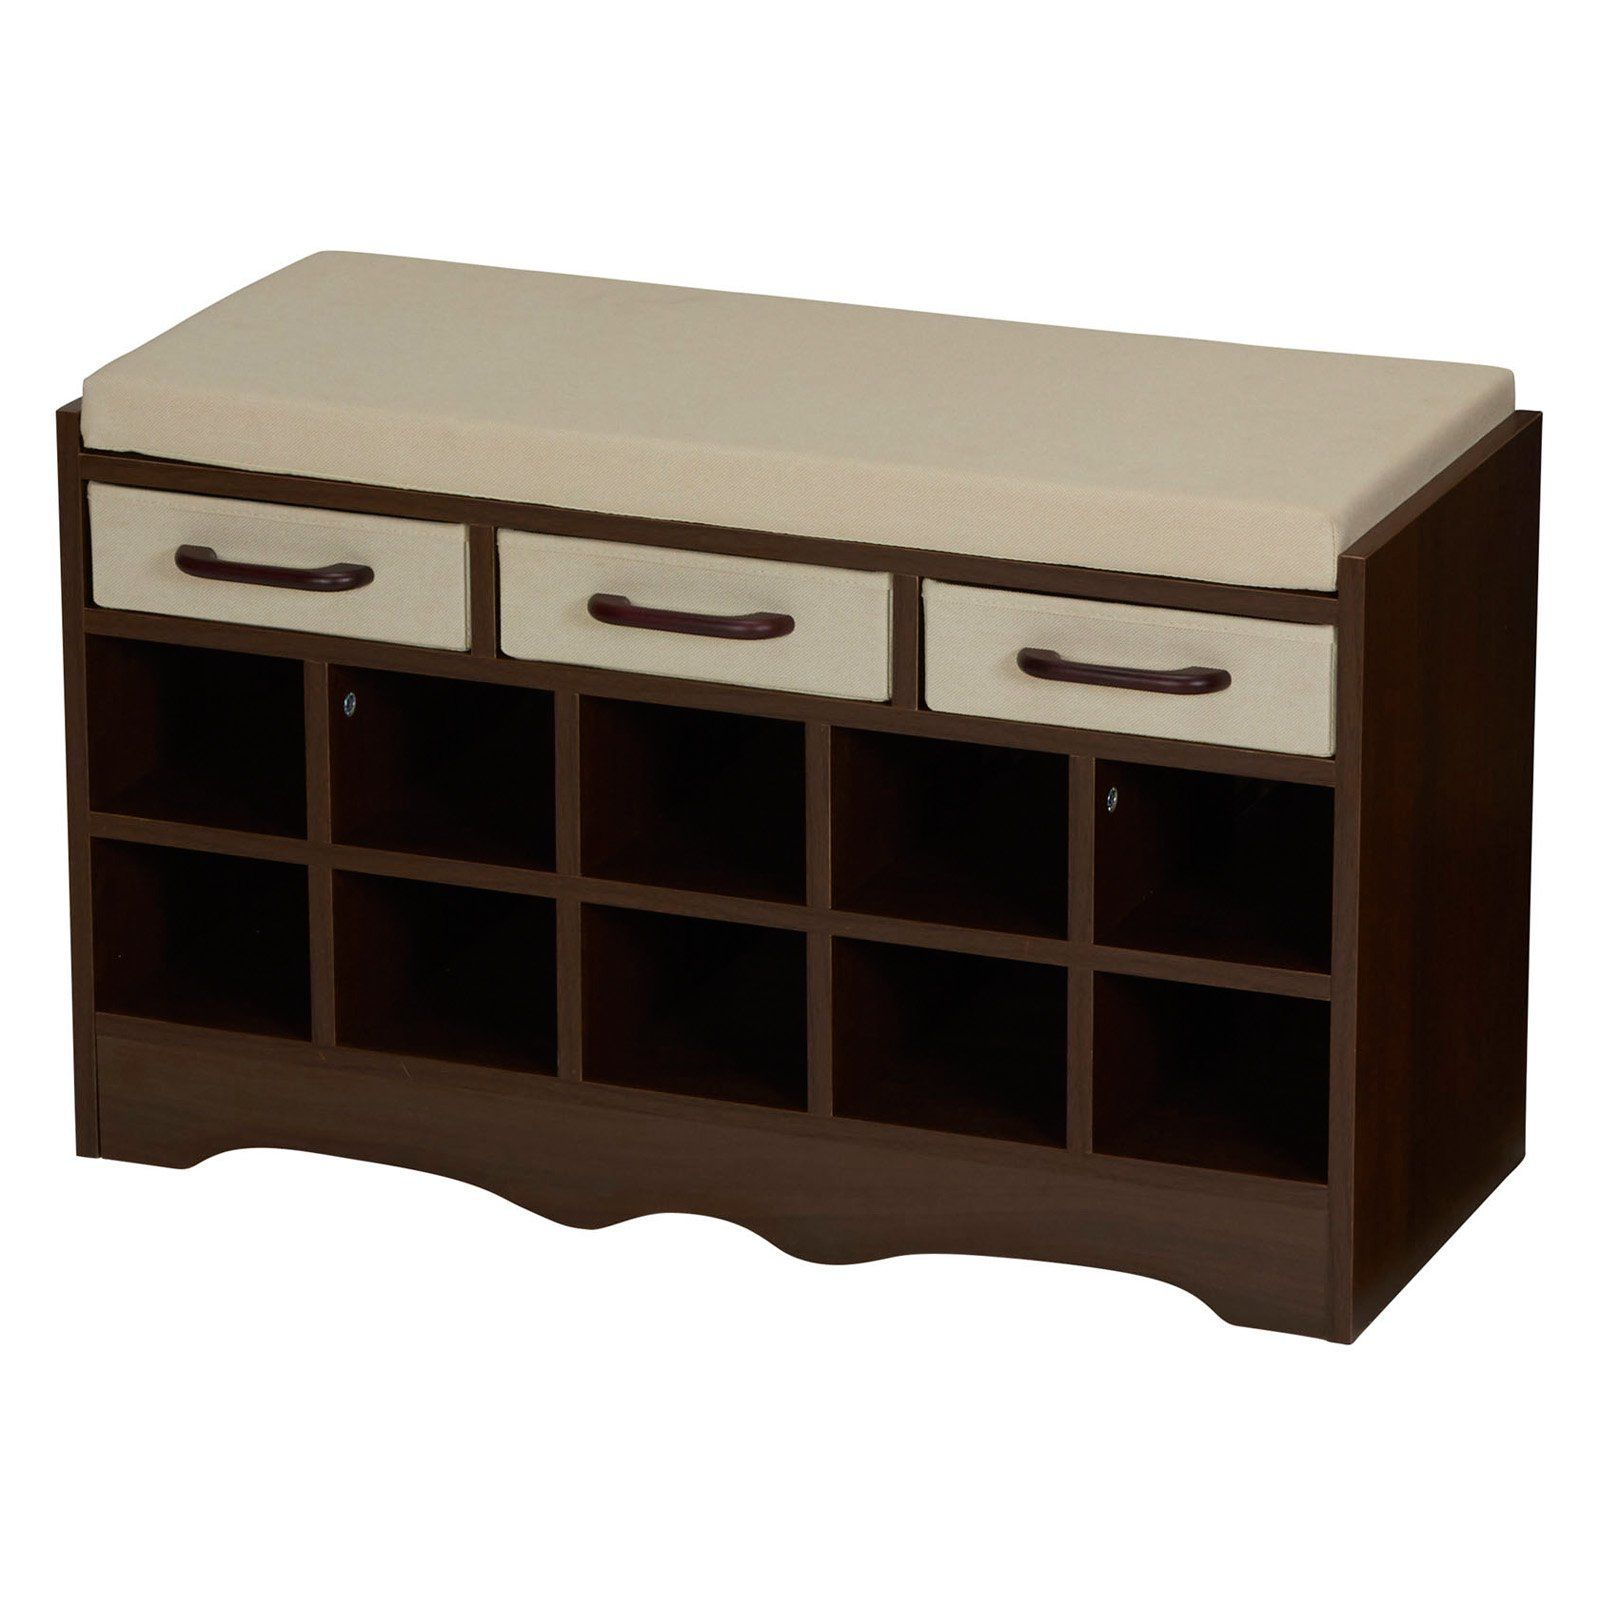 Household Essentials Entryway Storage Bench with Shoe Cubby | from ...